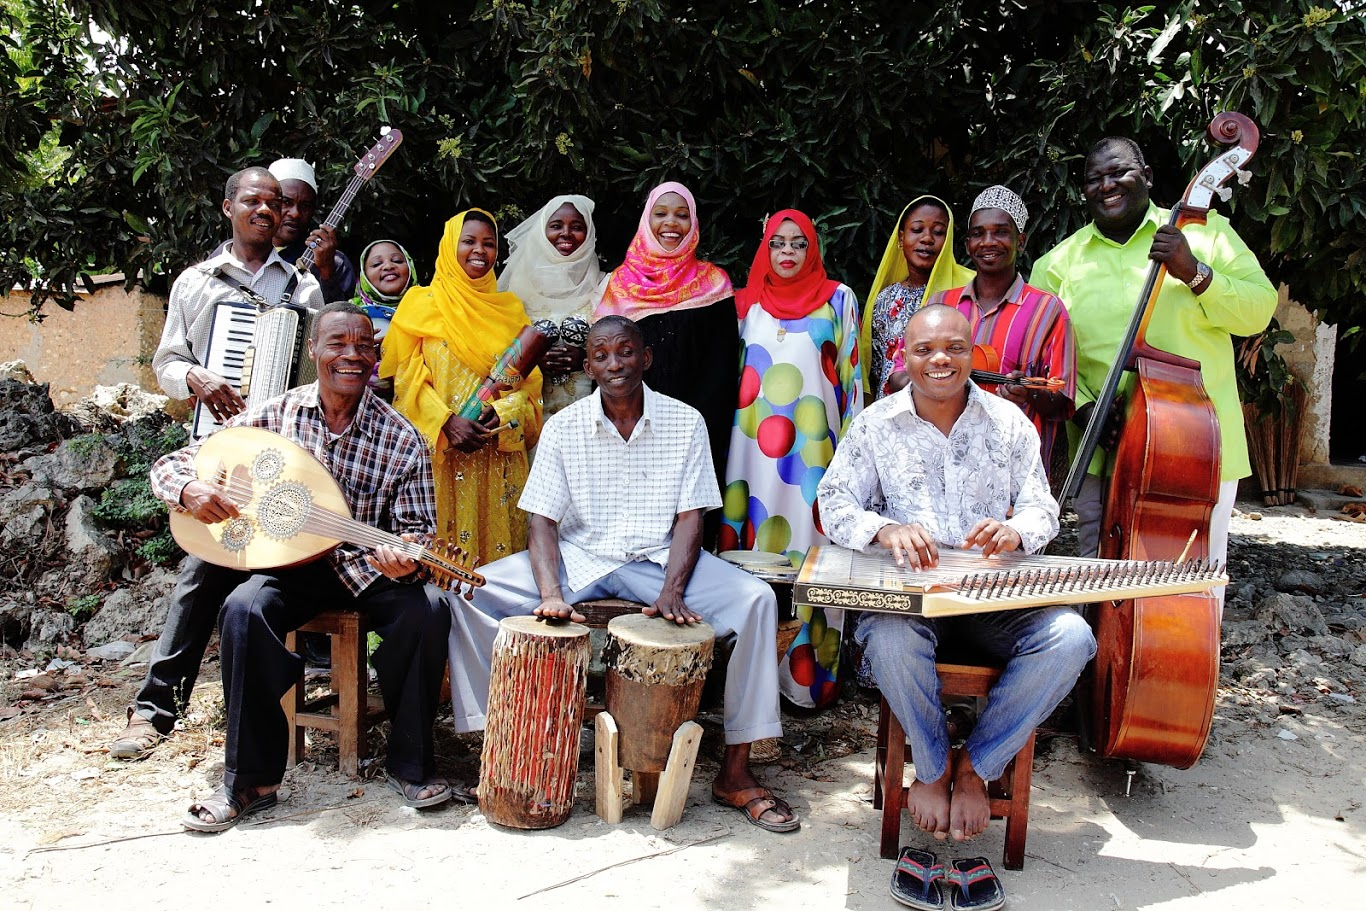 Rajab Suleiman And Kithara play September 16 at the Terrace as part of the Madison World Music Festival.